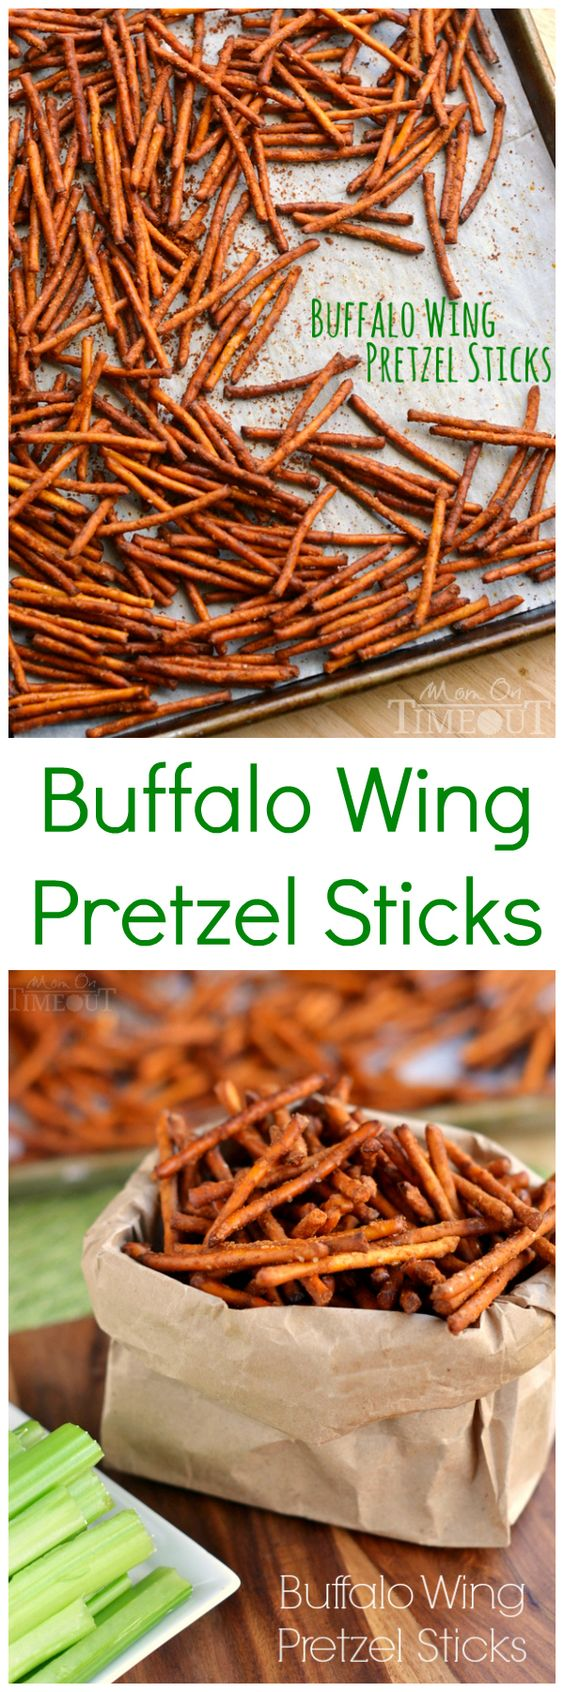 These Buffalo Wing Pretzel Sticks are the perfect snack to enjoy while watching the game!: